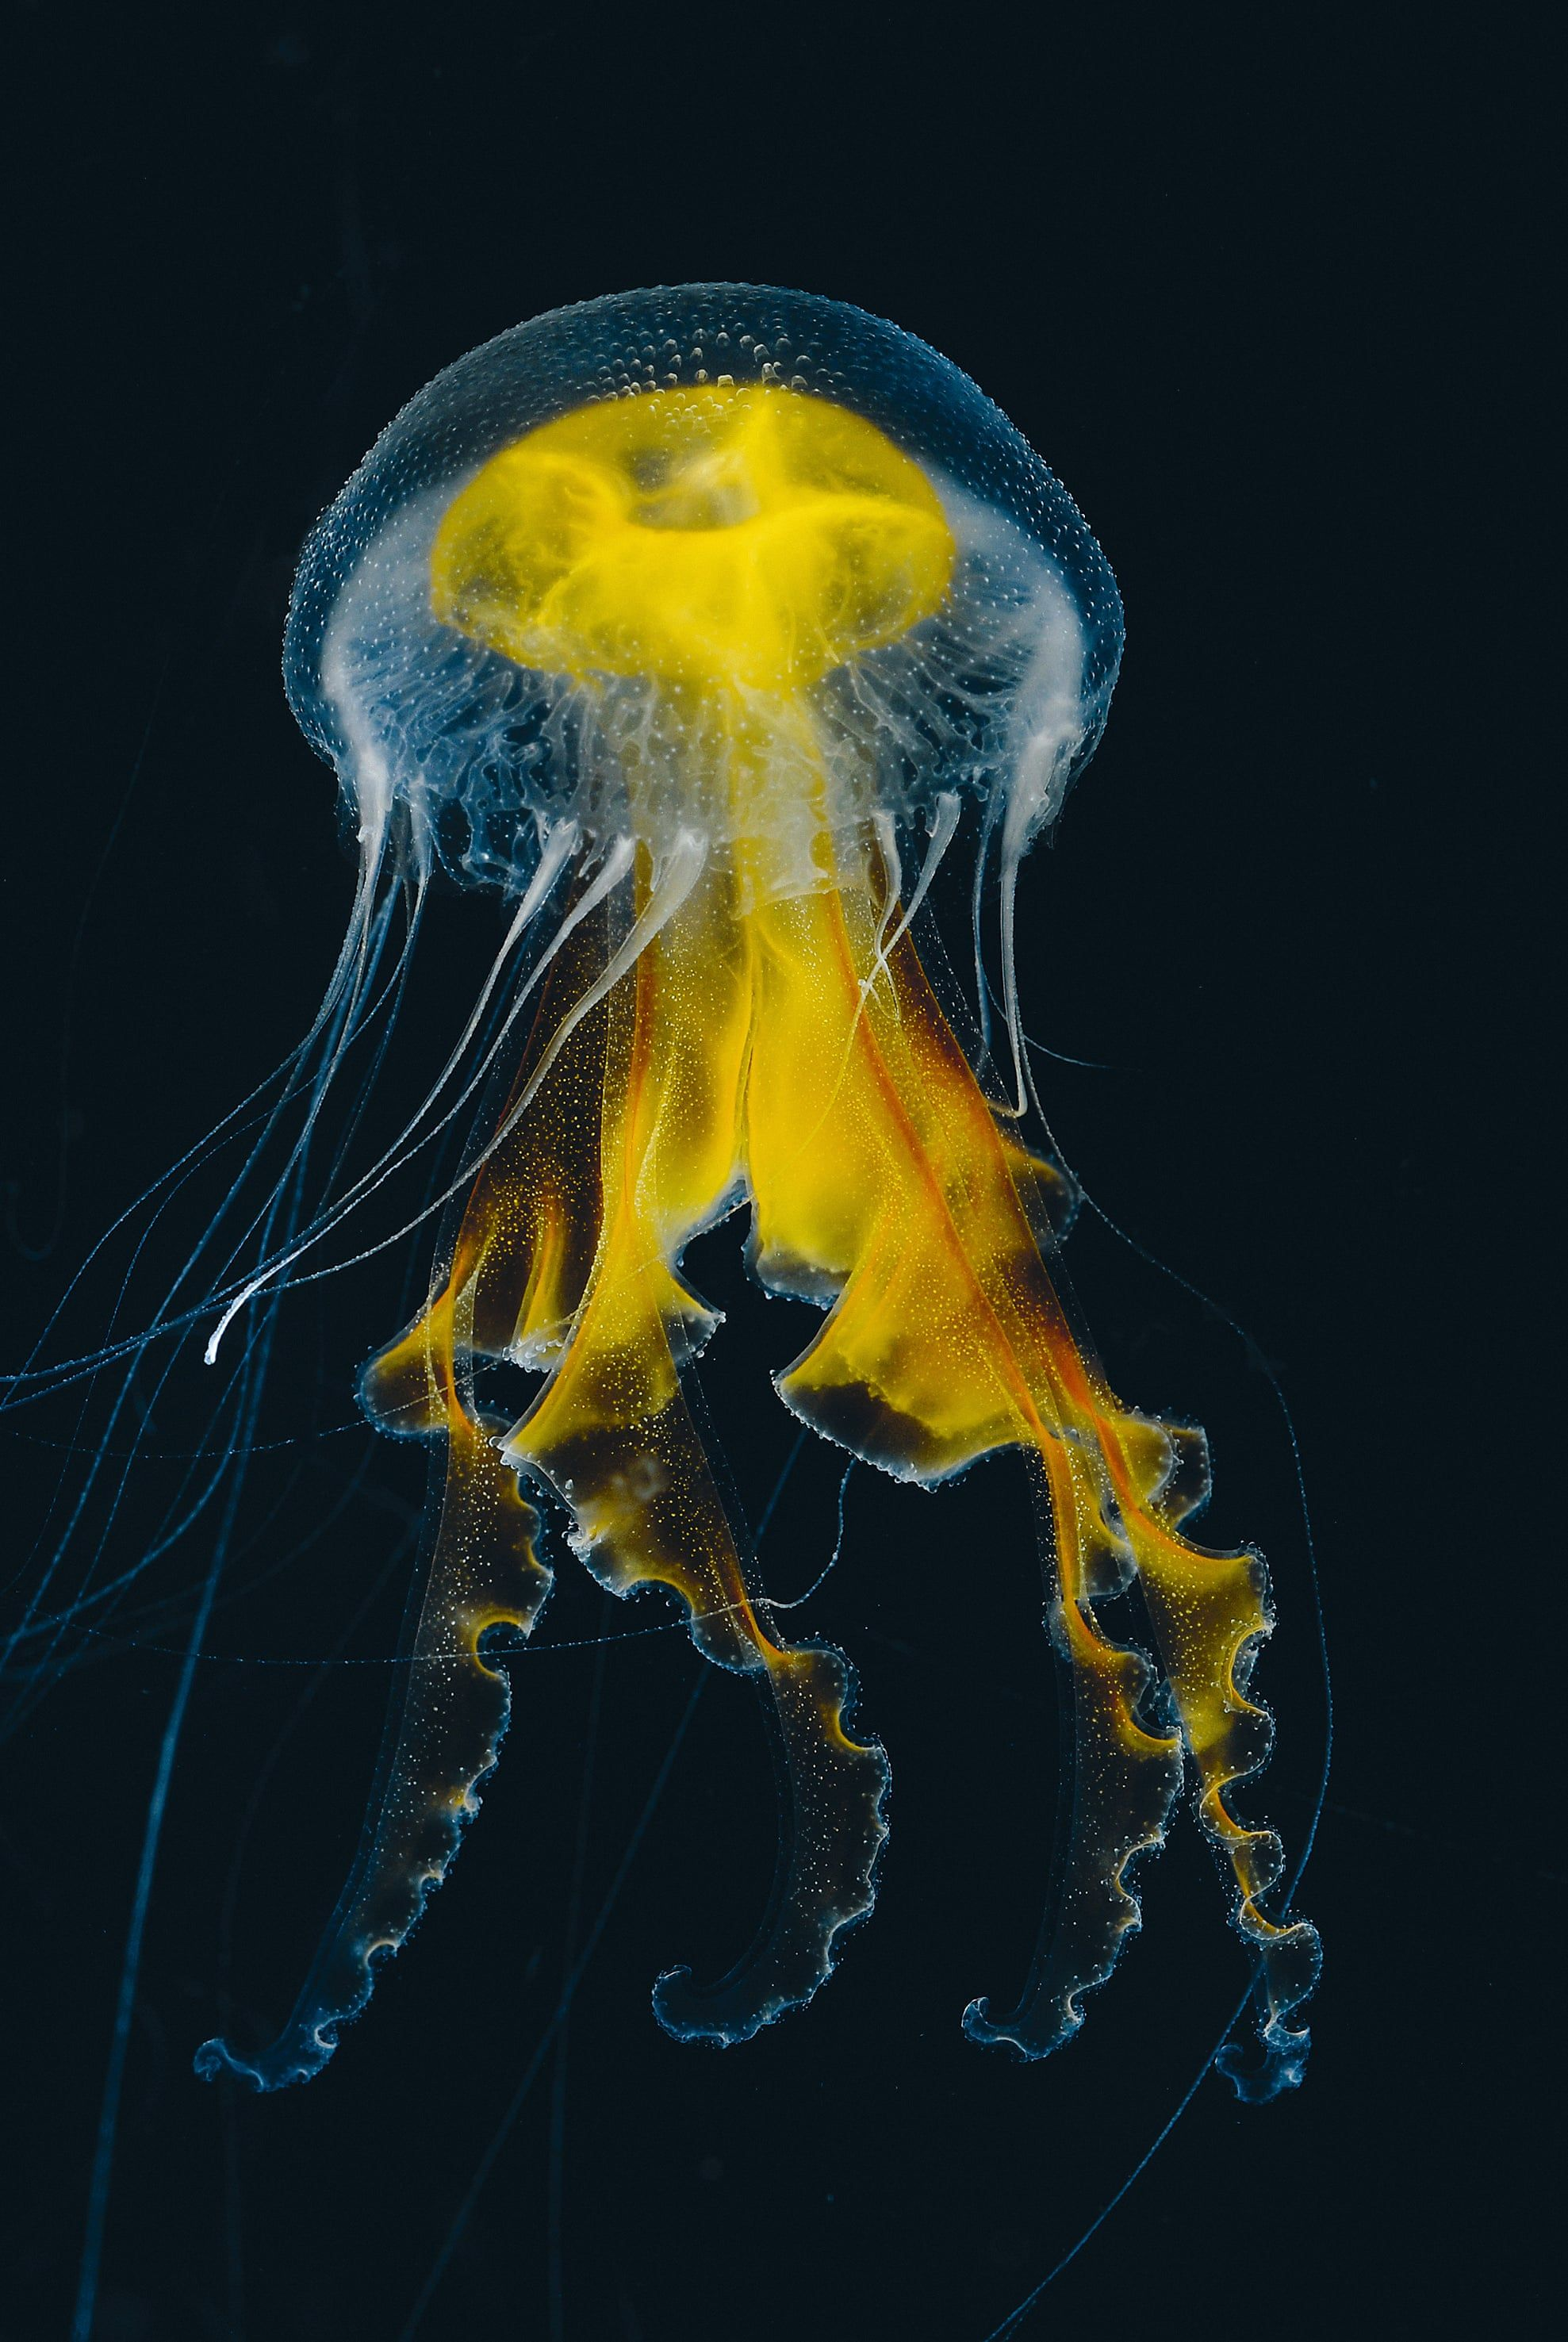 Sea nettles and medusa: a world atlas of jellyfish - in pictures